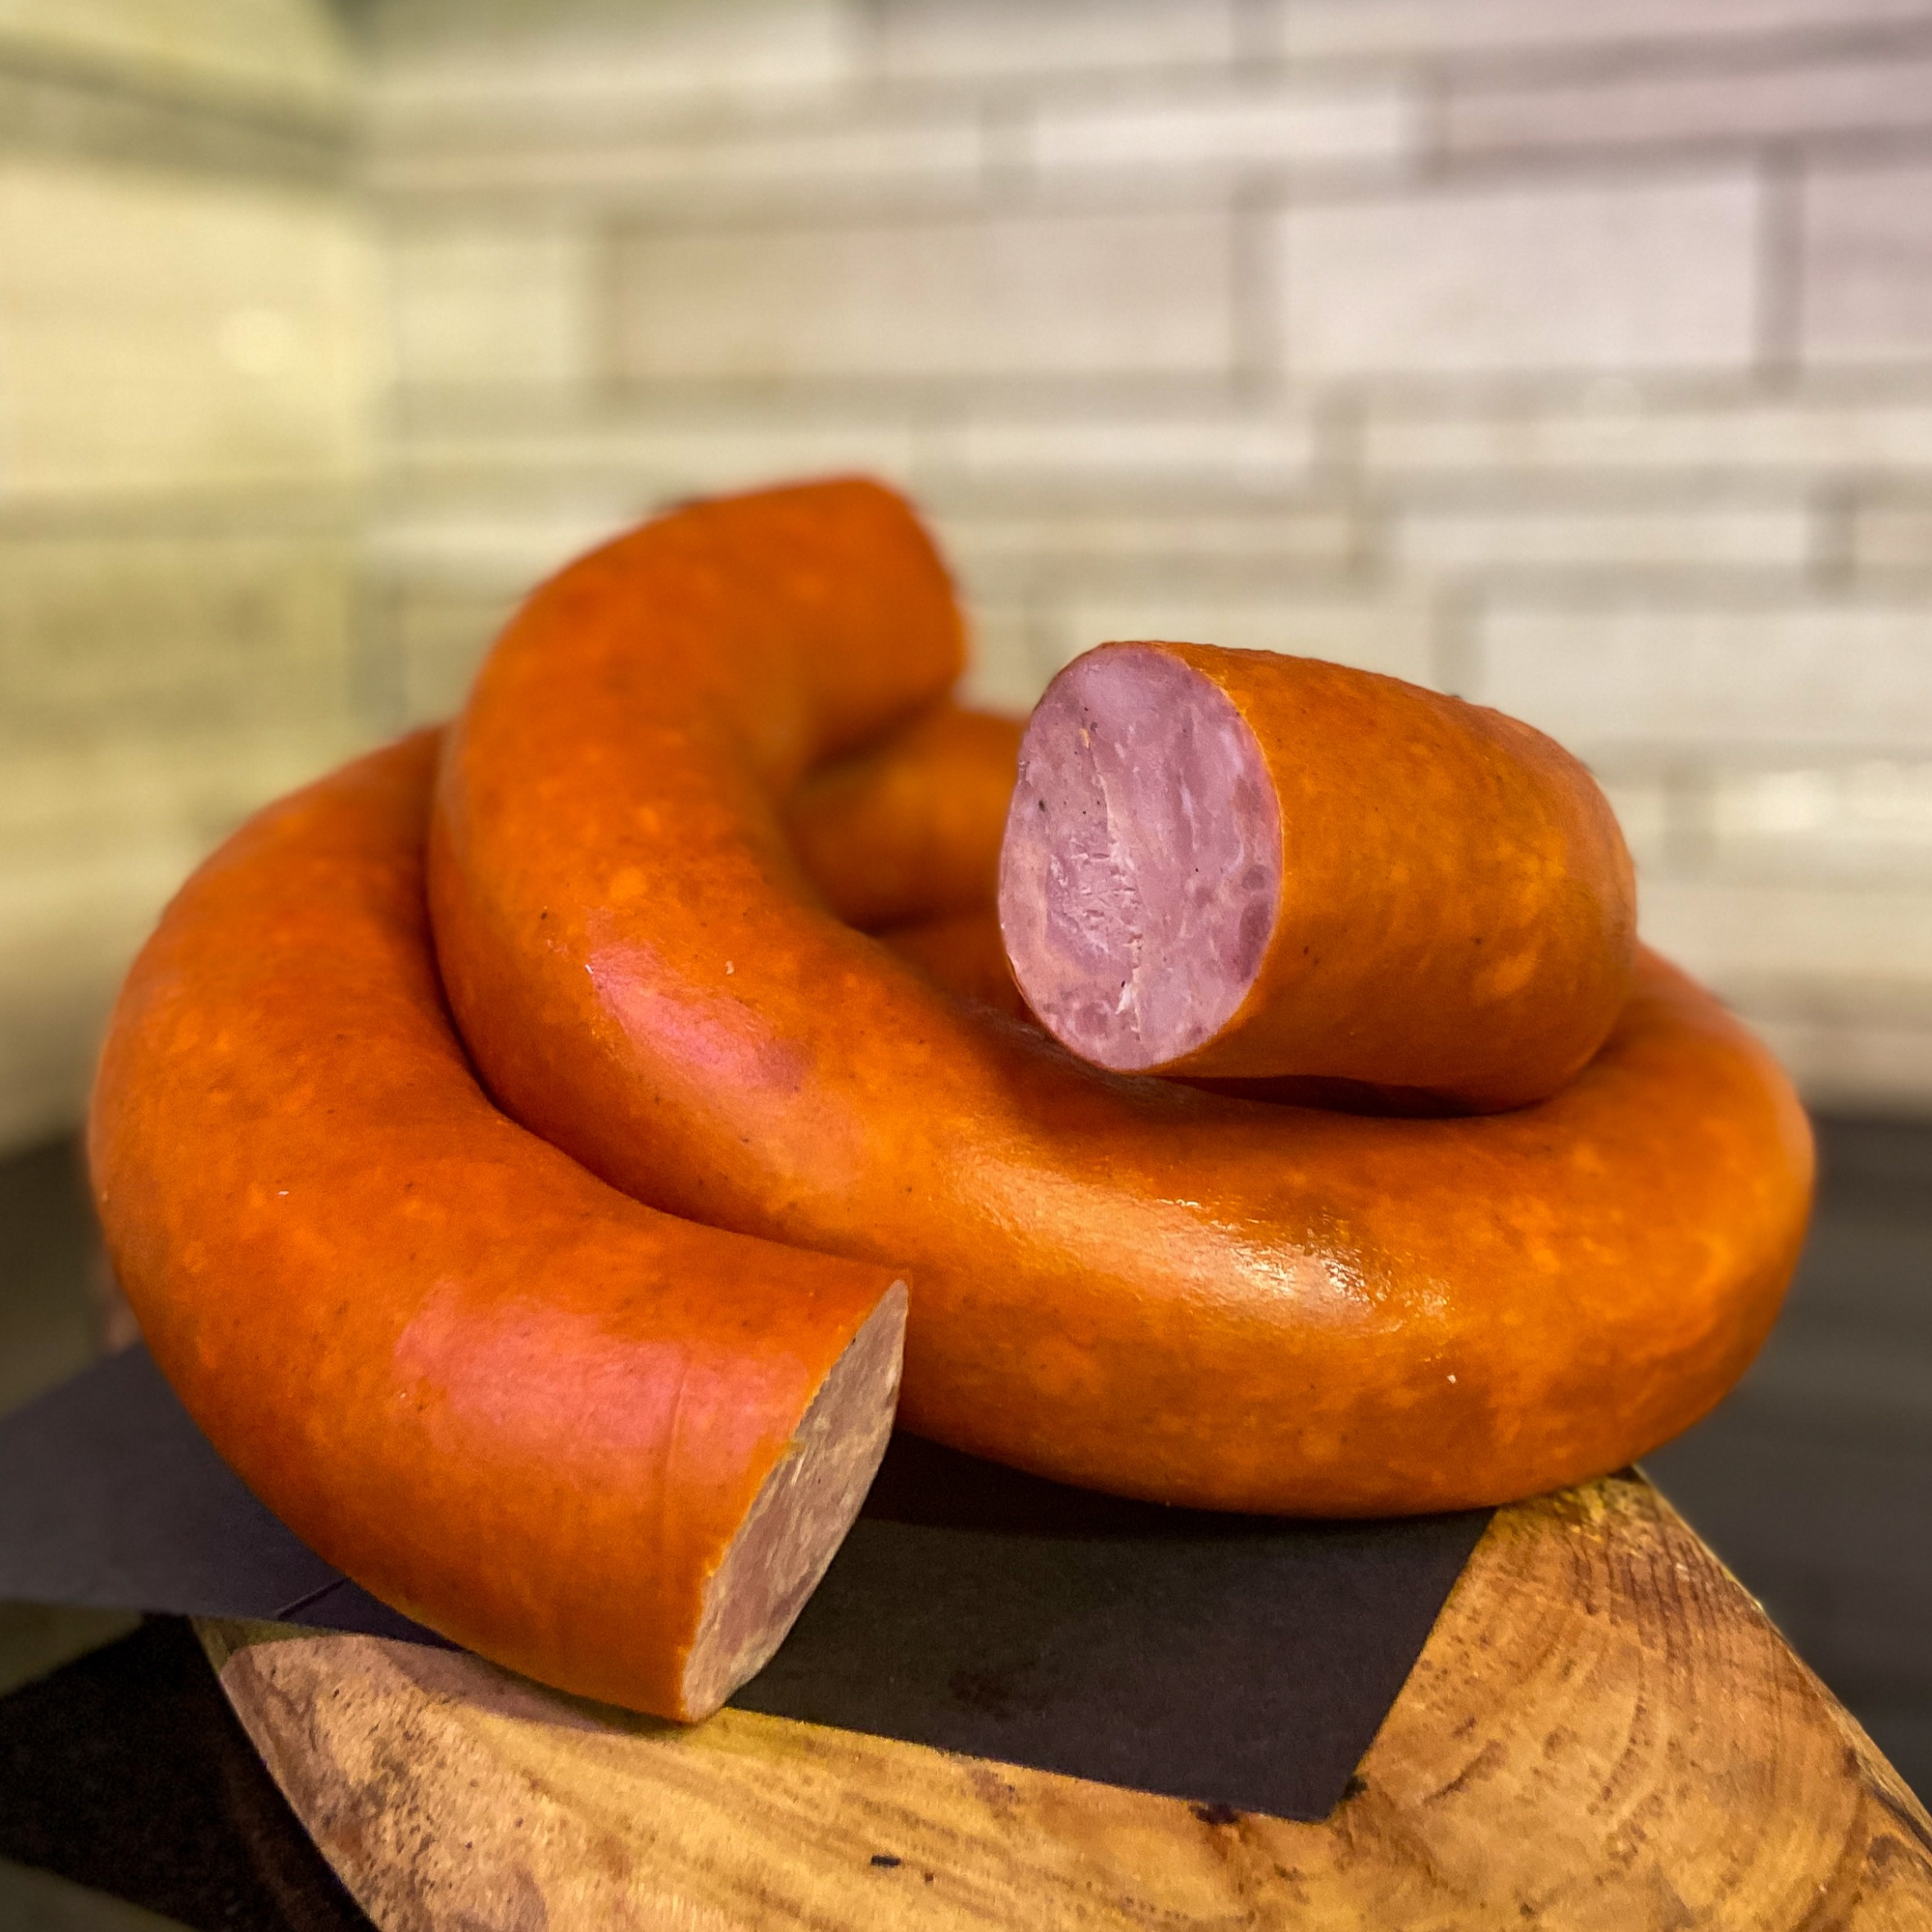 Single Smoked Kielbasa